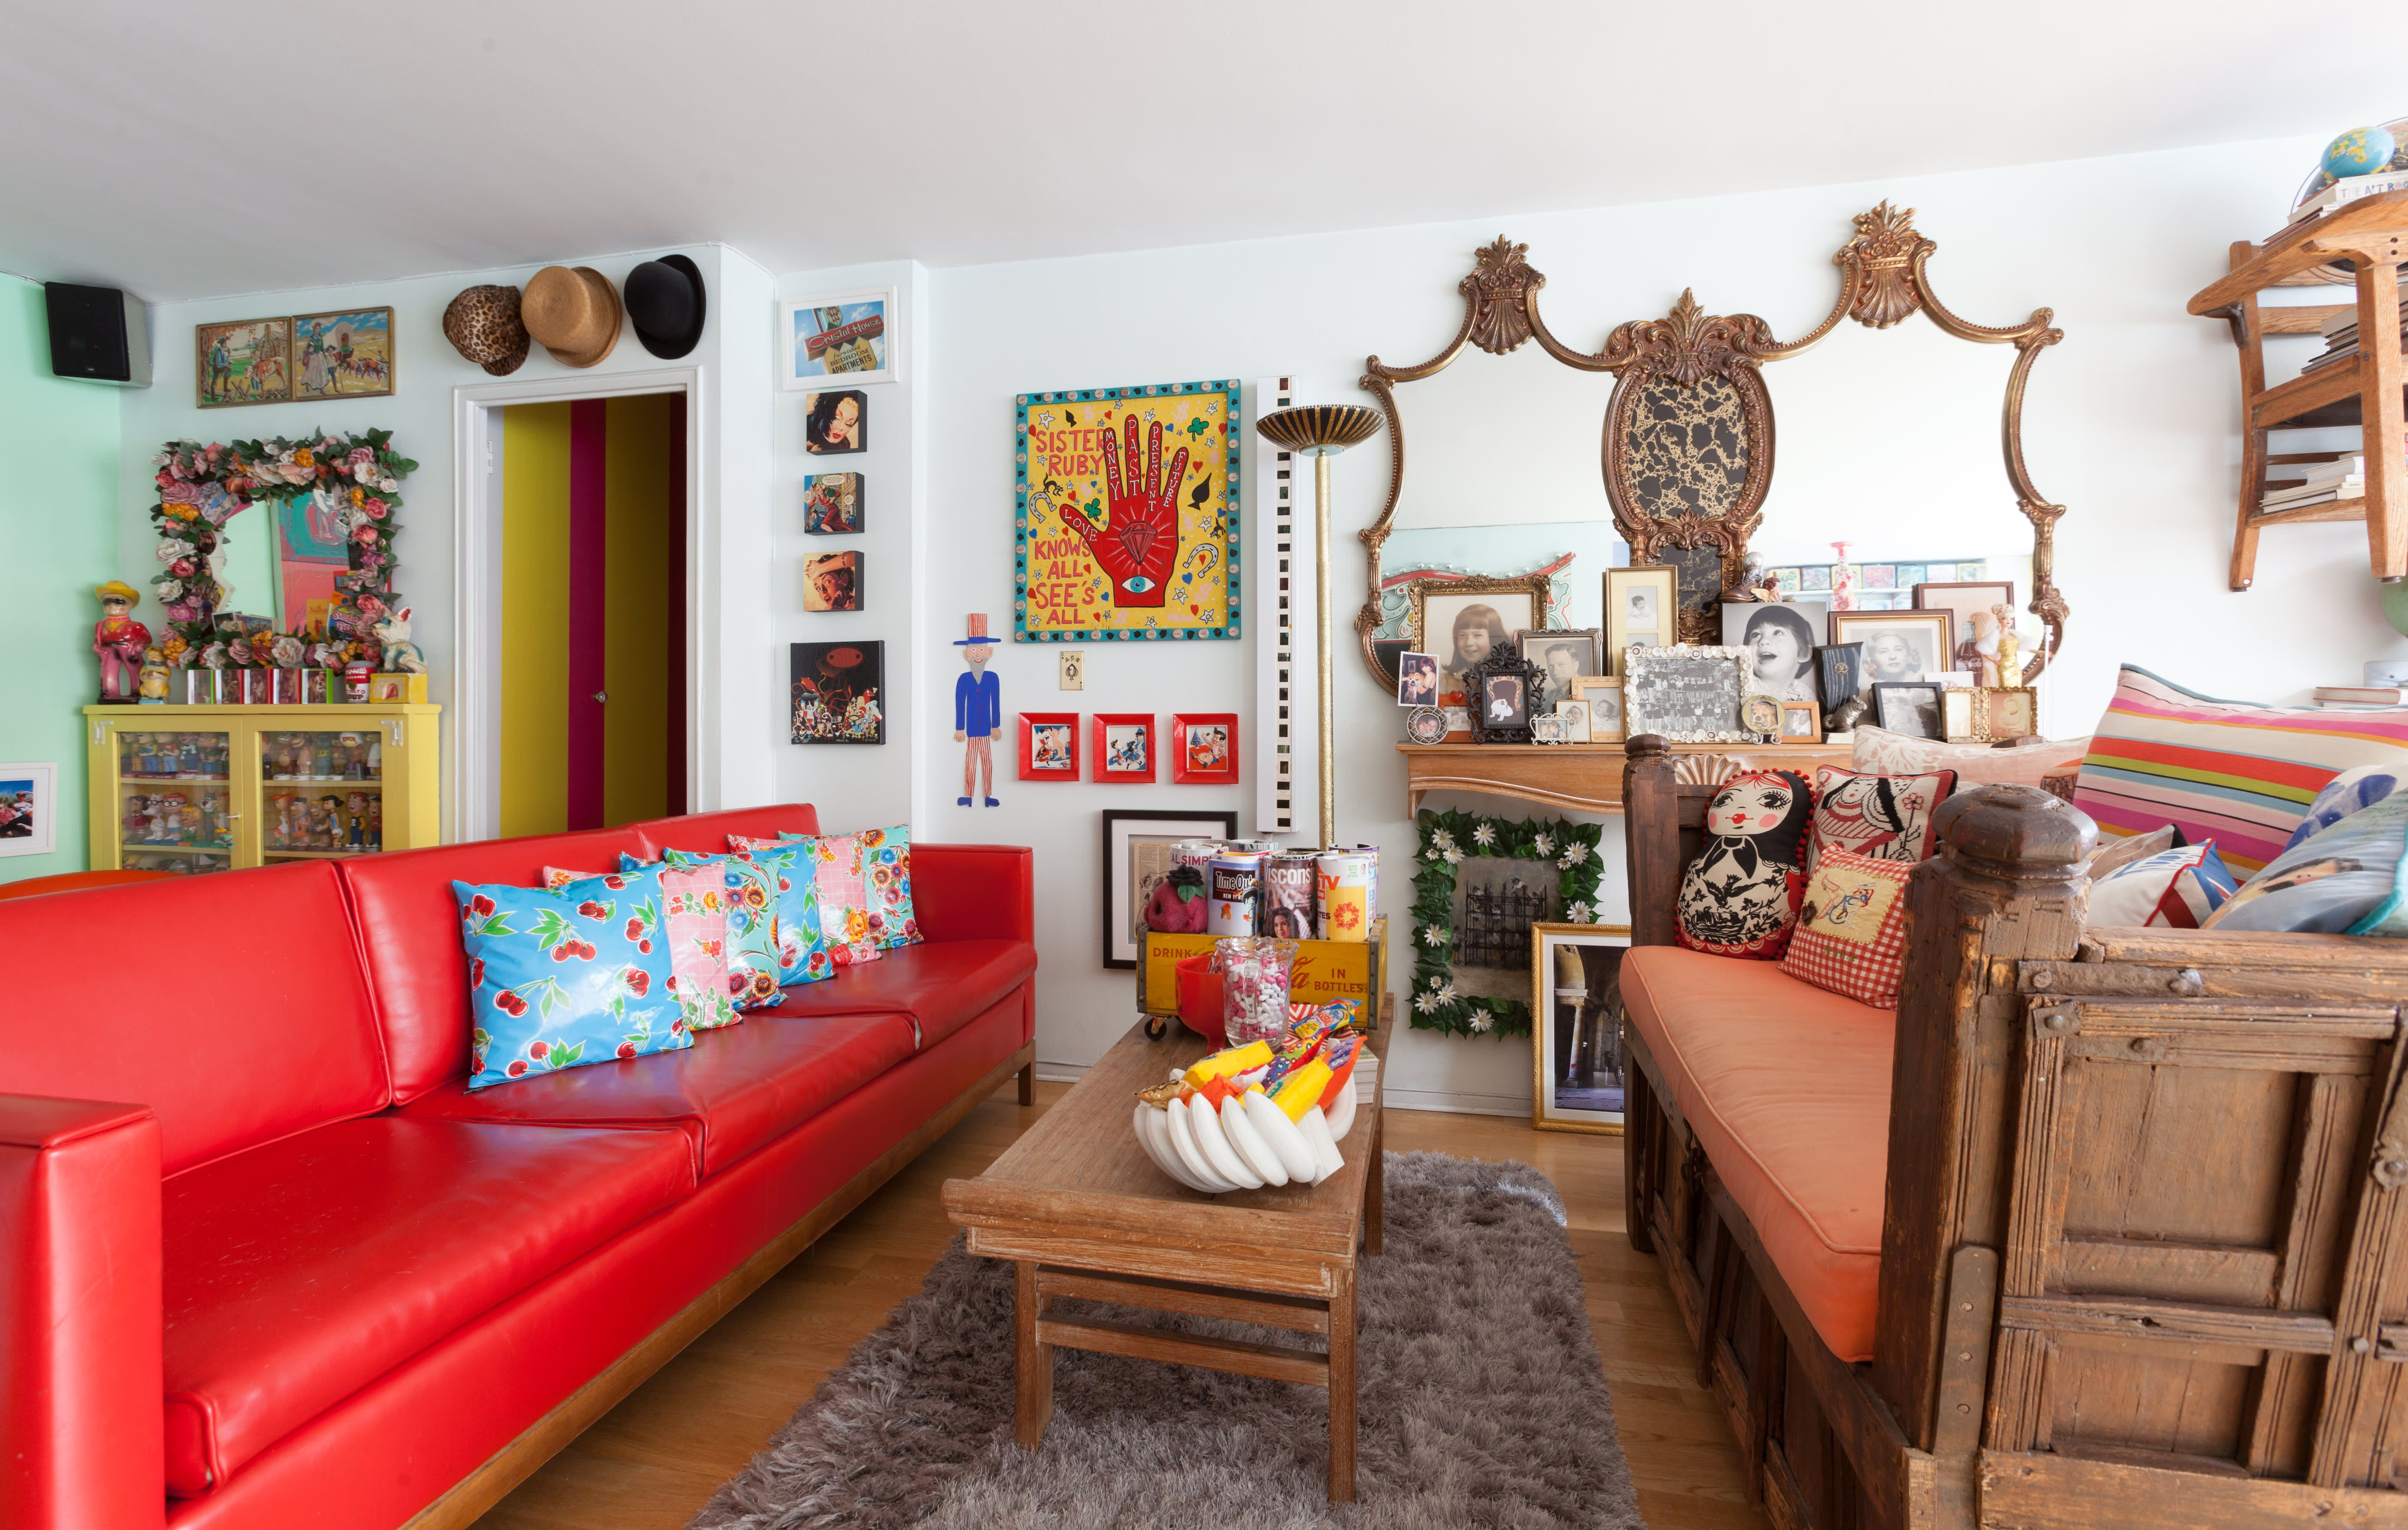 This Nyc Home Is Like A Mini Pop Culture Museum Bedroom Decor Inspiration Aesthetic Rooms Decor #popular #living #room #decor